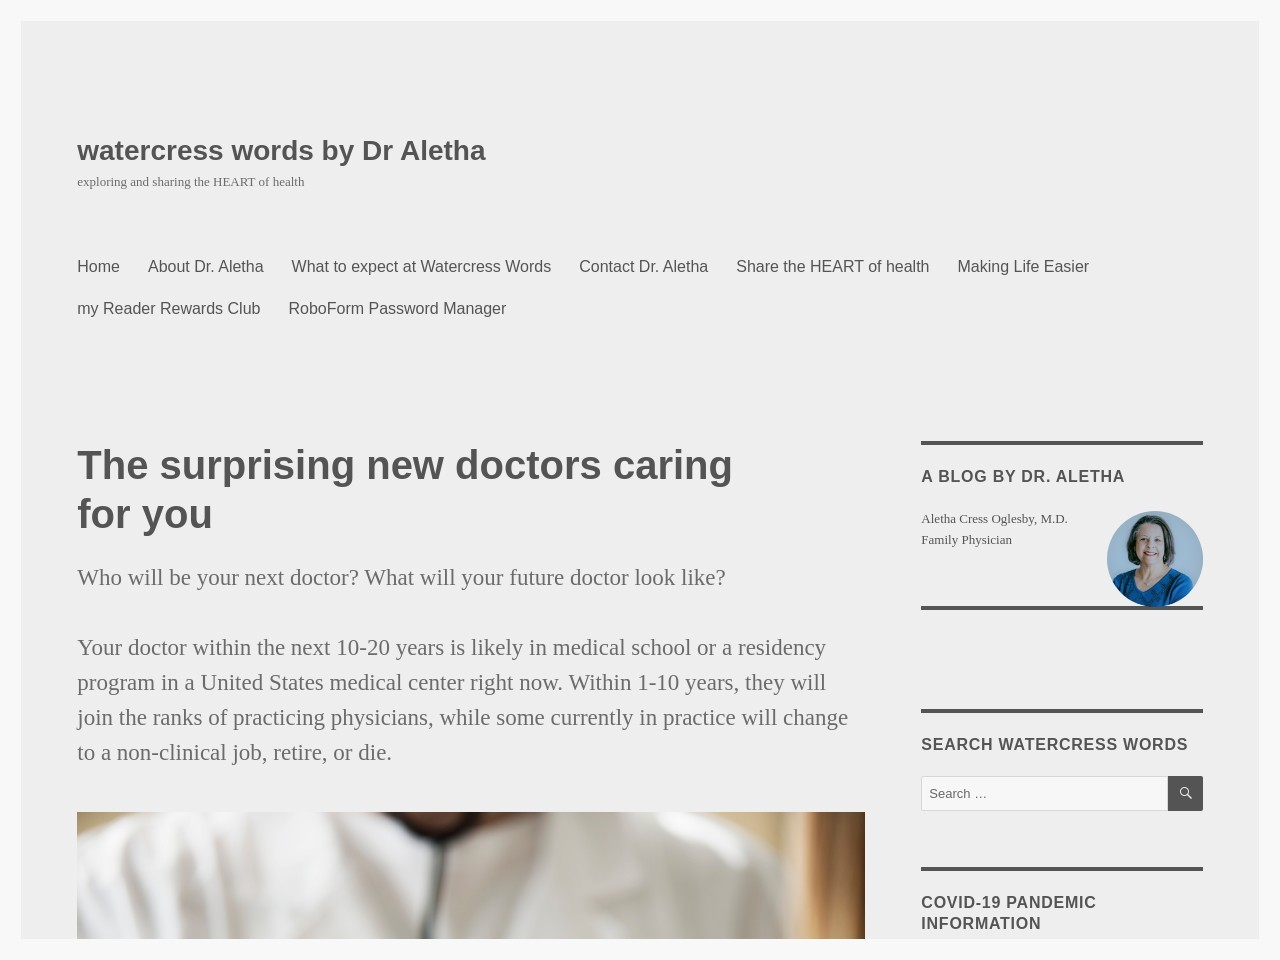 The surprising new doctors caring for you